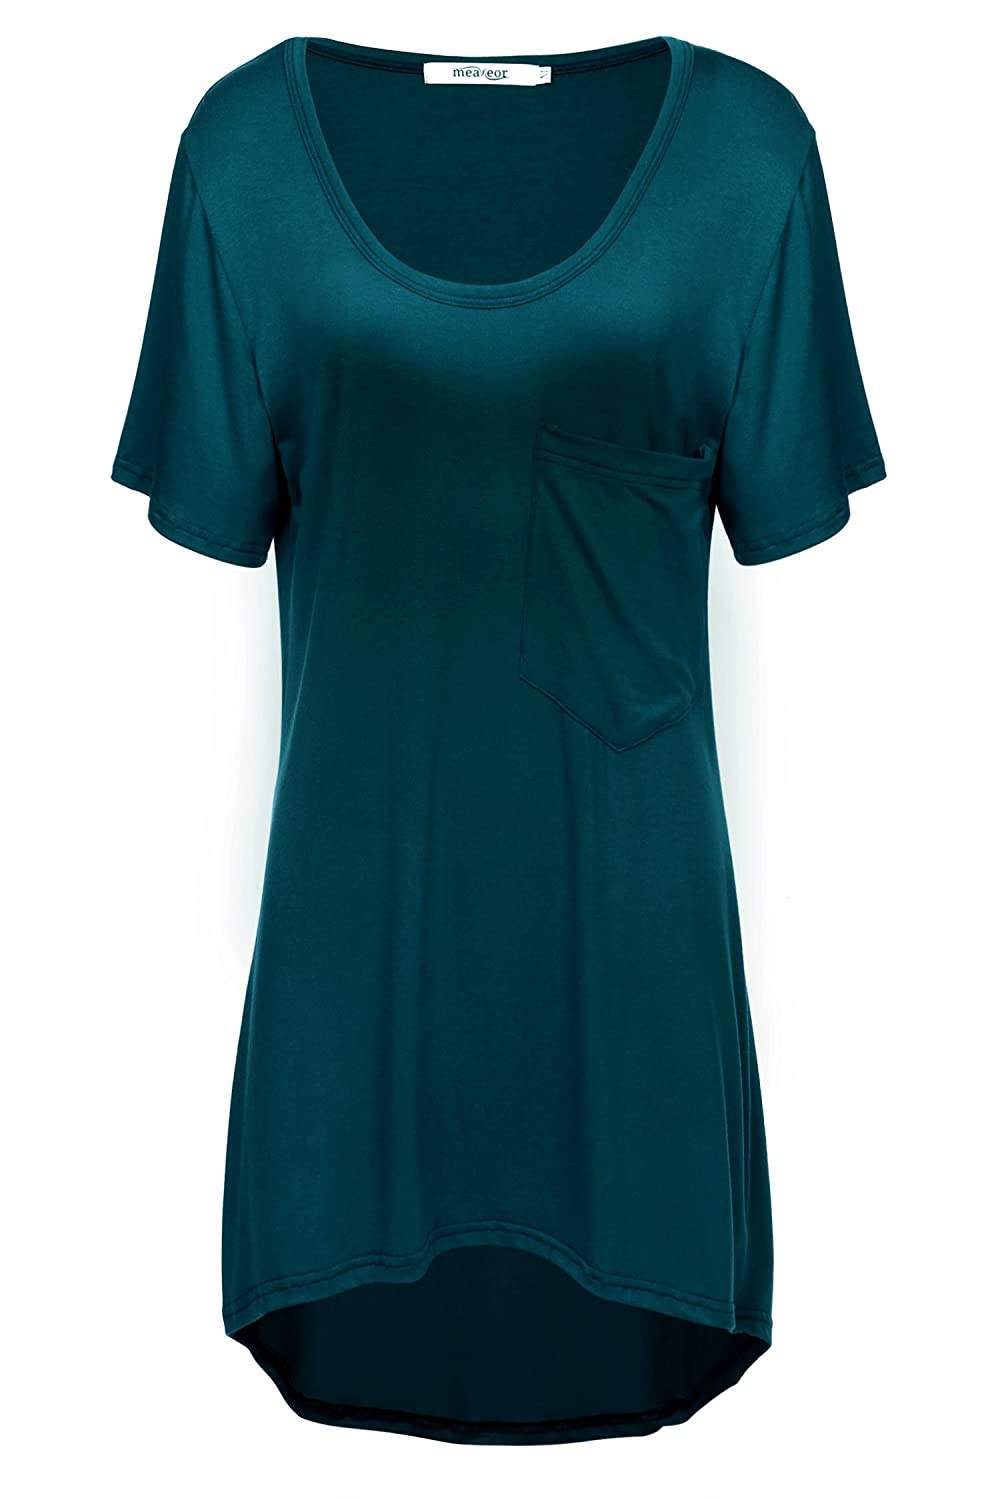 Meaneor Women's High Low Hem Scoop Neck Loose Casual T-Shirt Tunic Top